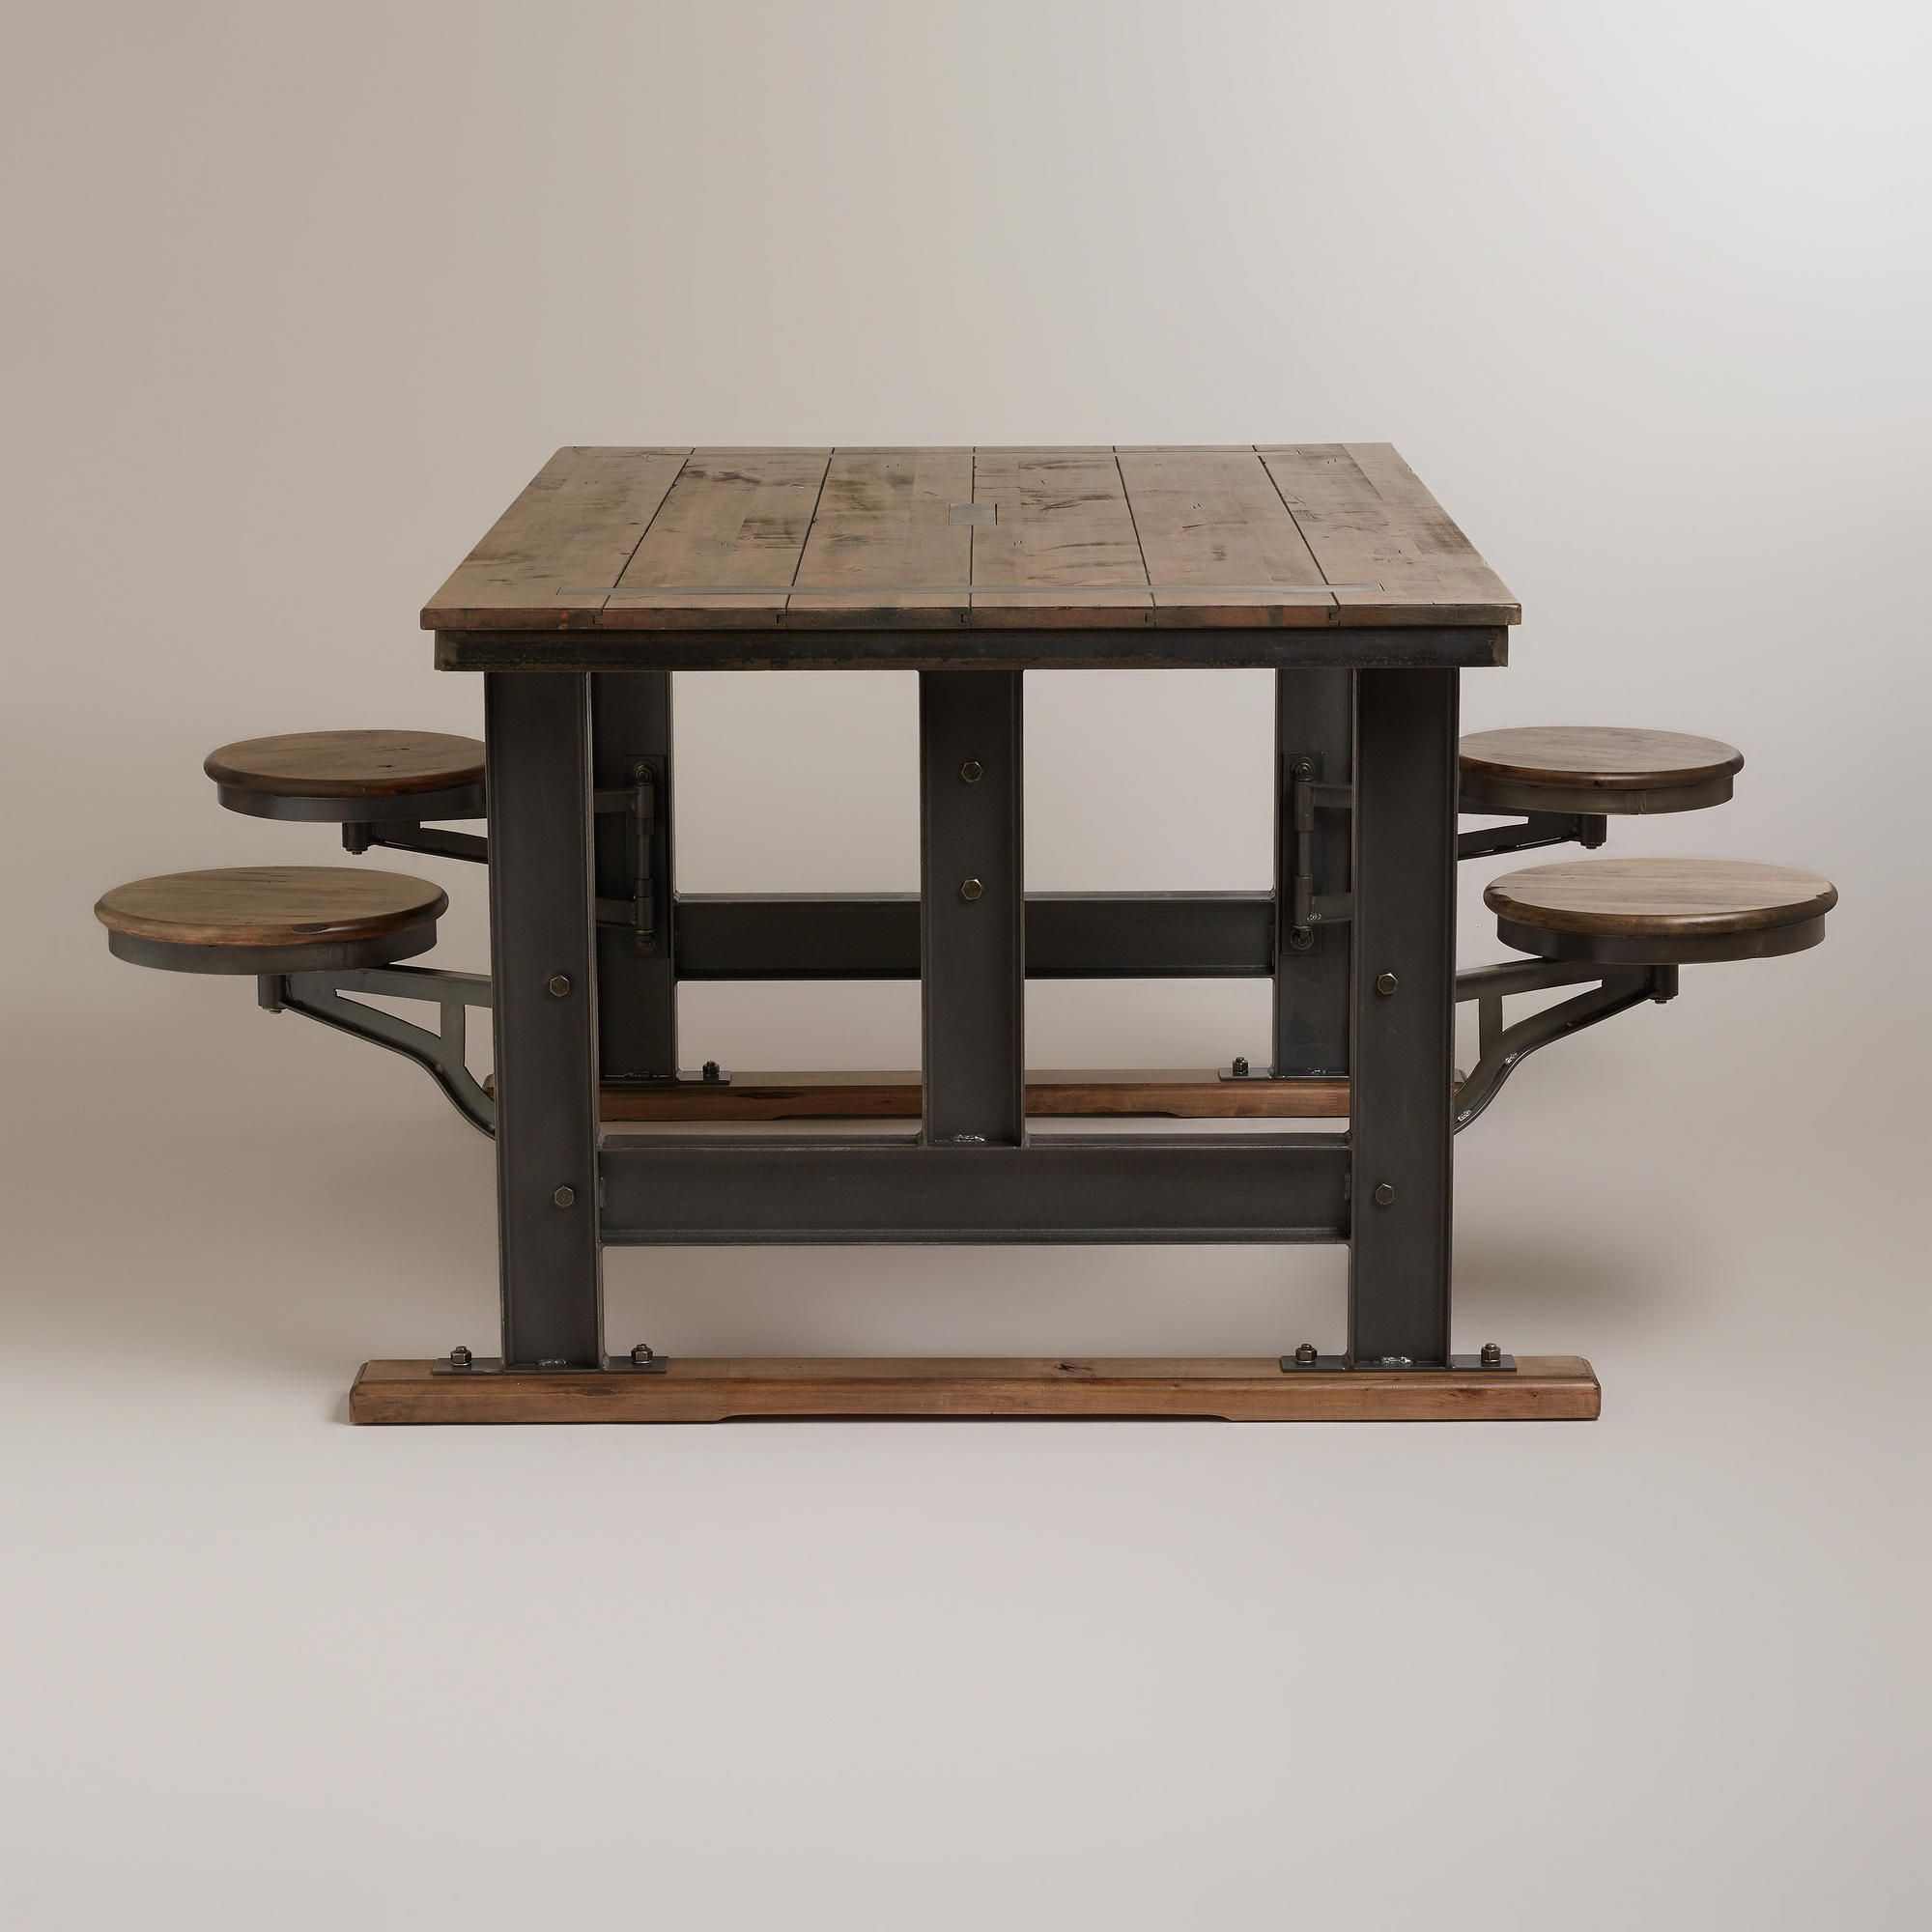 Galvin Cafeteria Table Stools, Breakfast nooks and